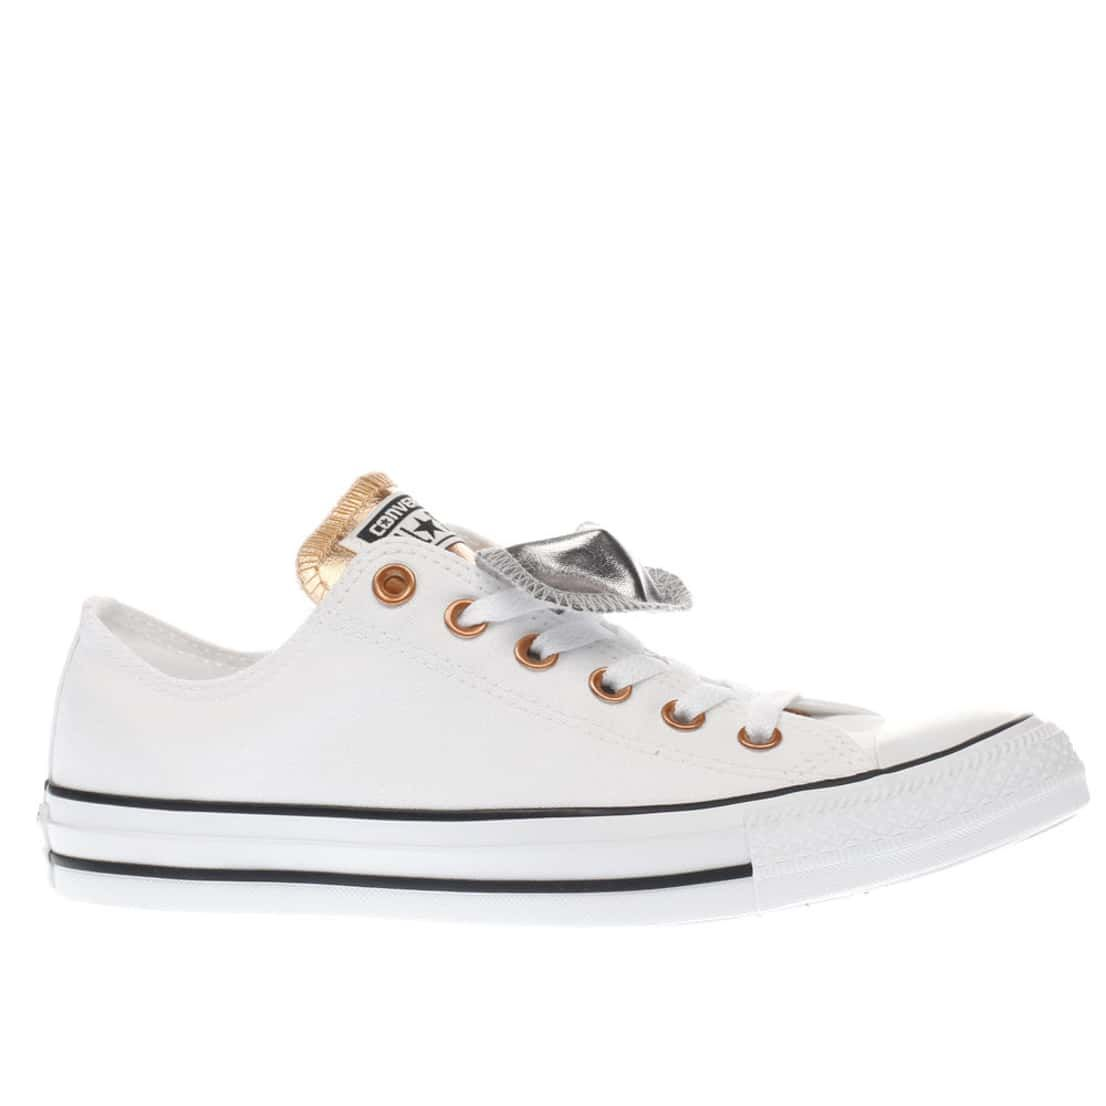 e7a44664906f womens silver   bronze converse all star double tongue ox trainers ...